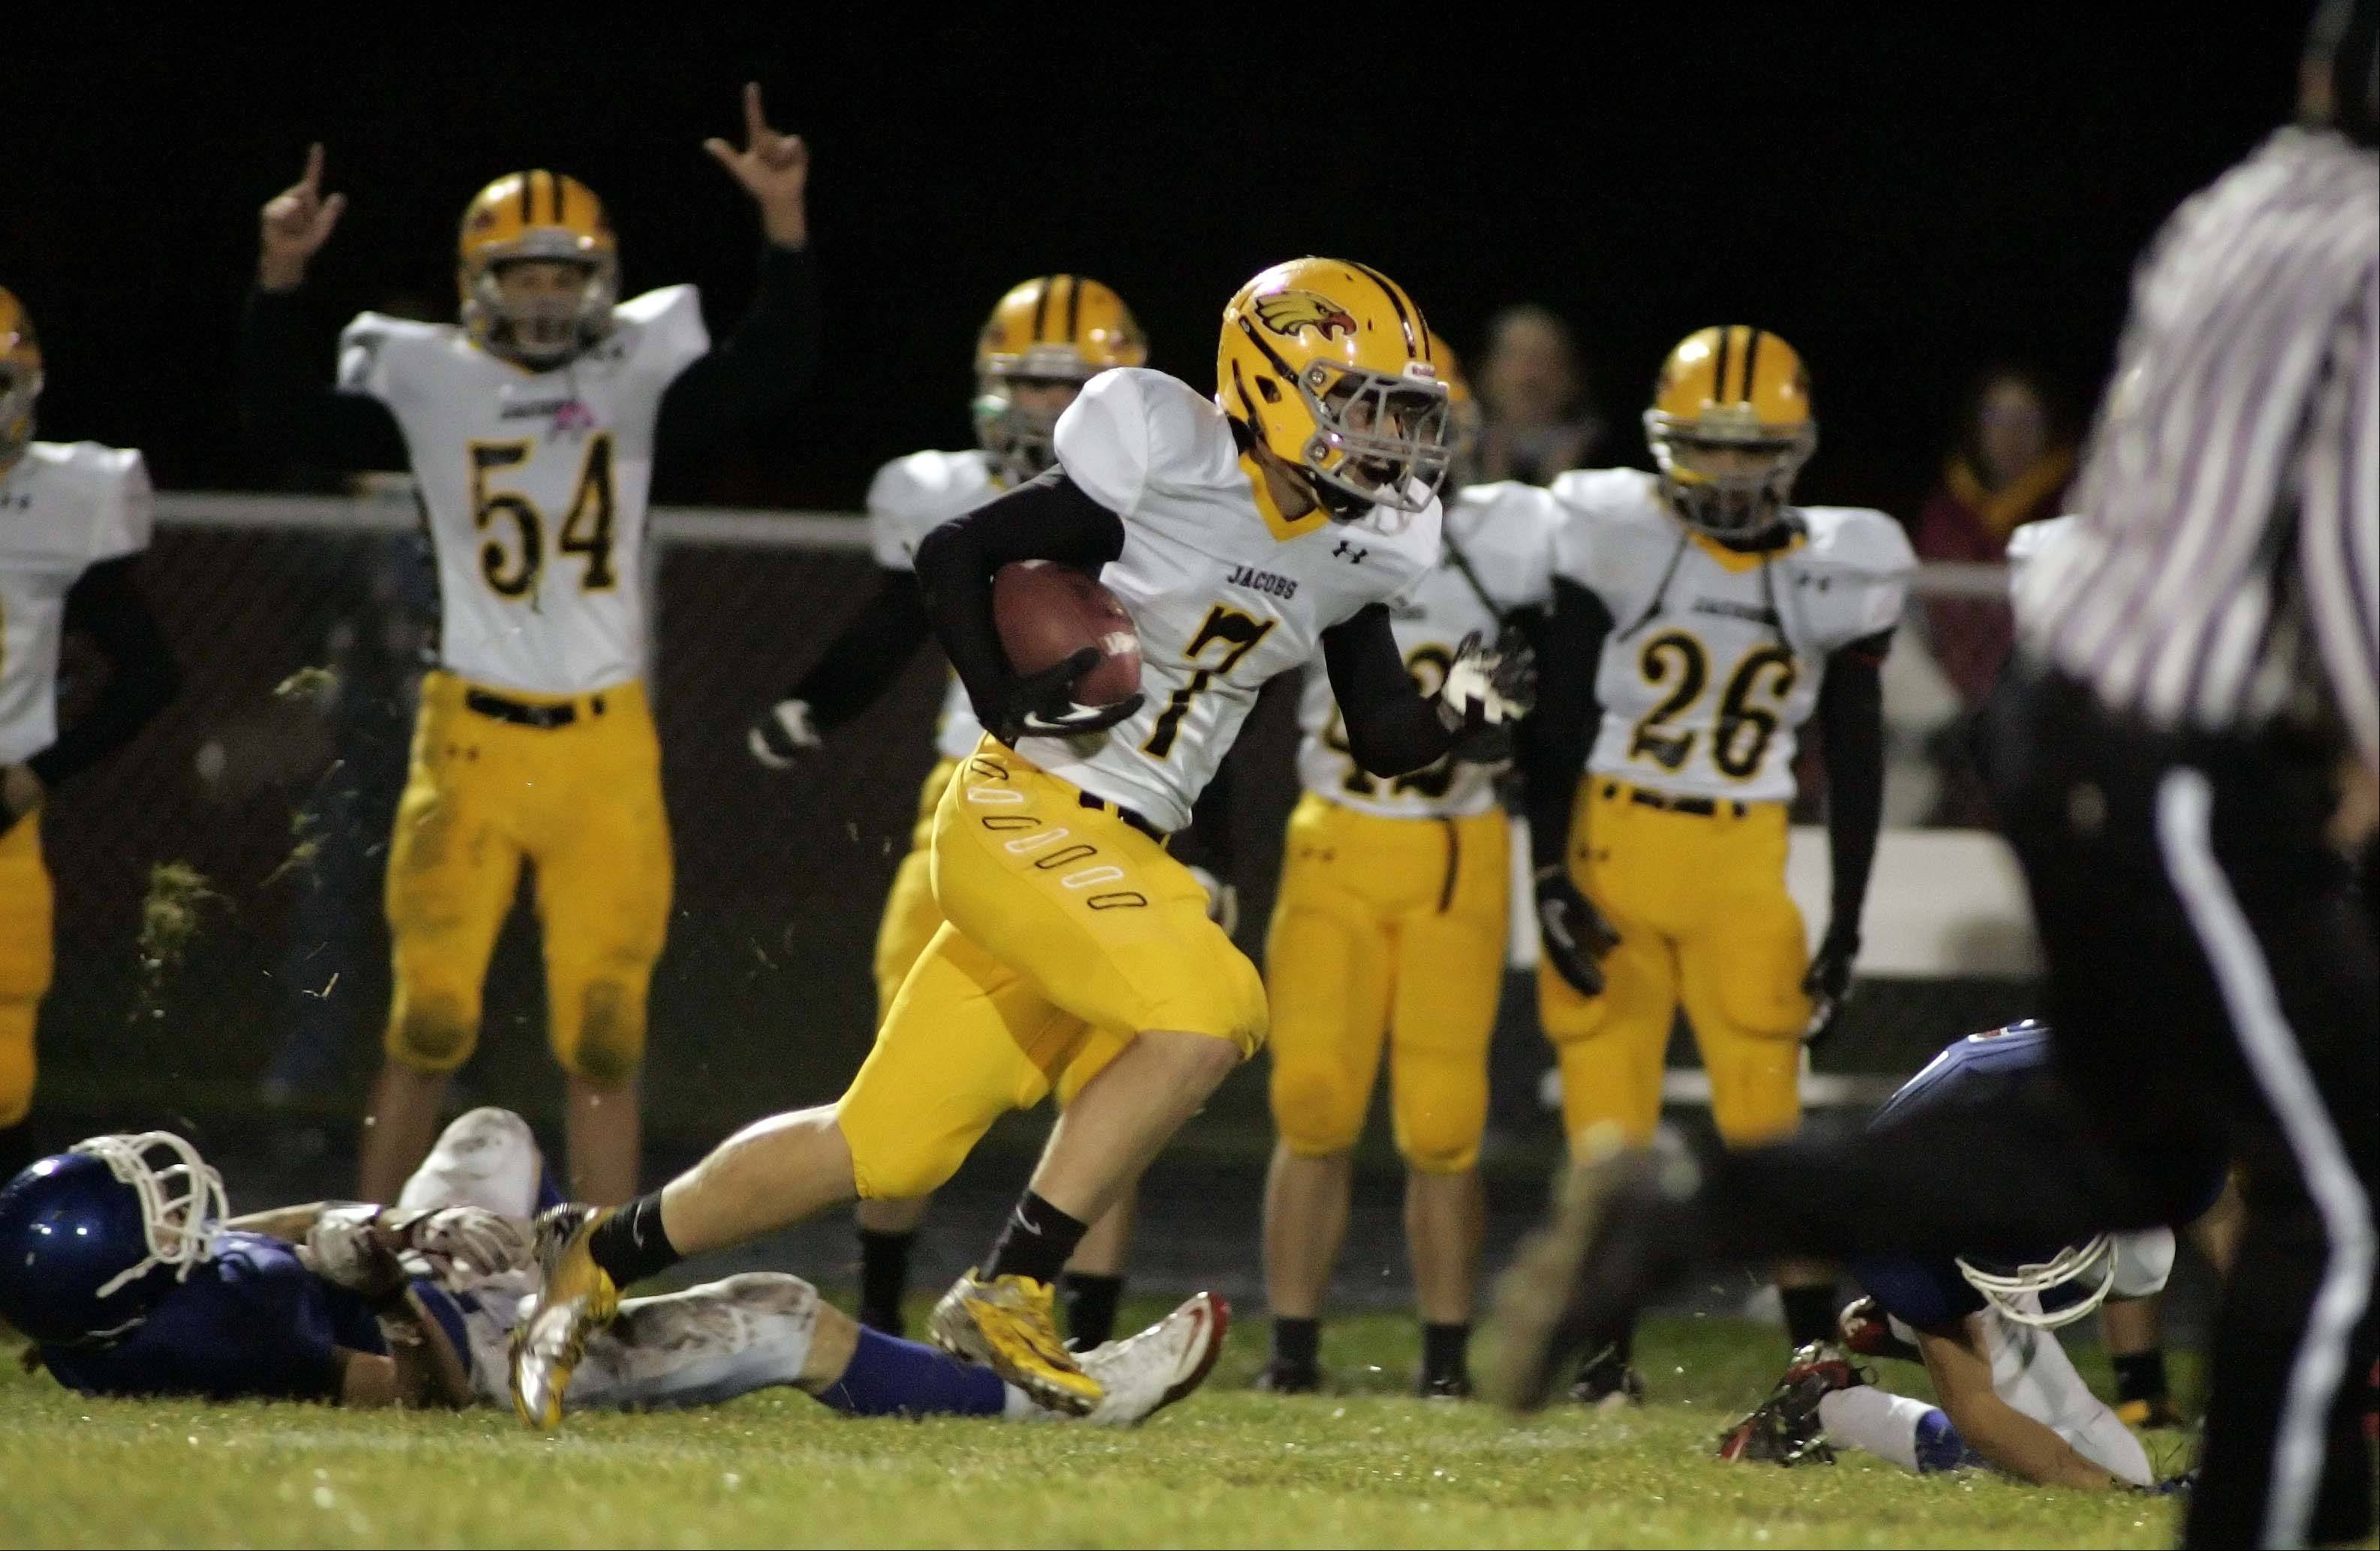 Images: Jacobs vs. Dundee-Crown football